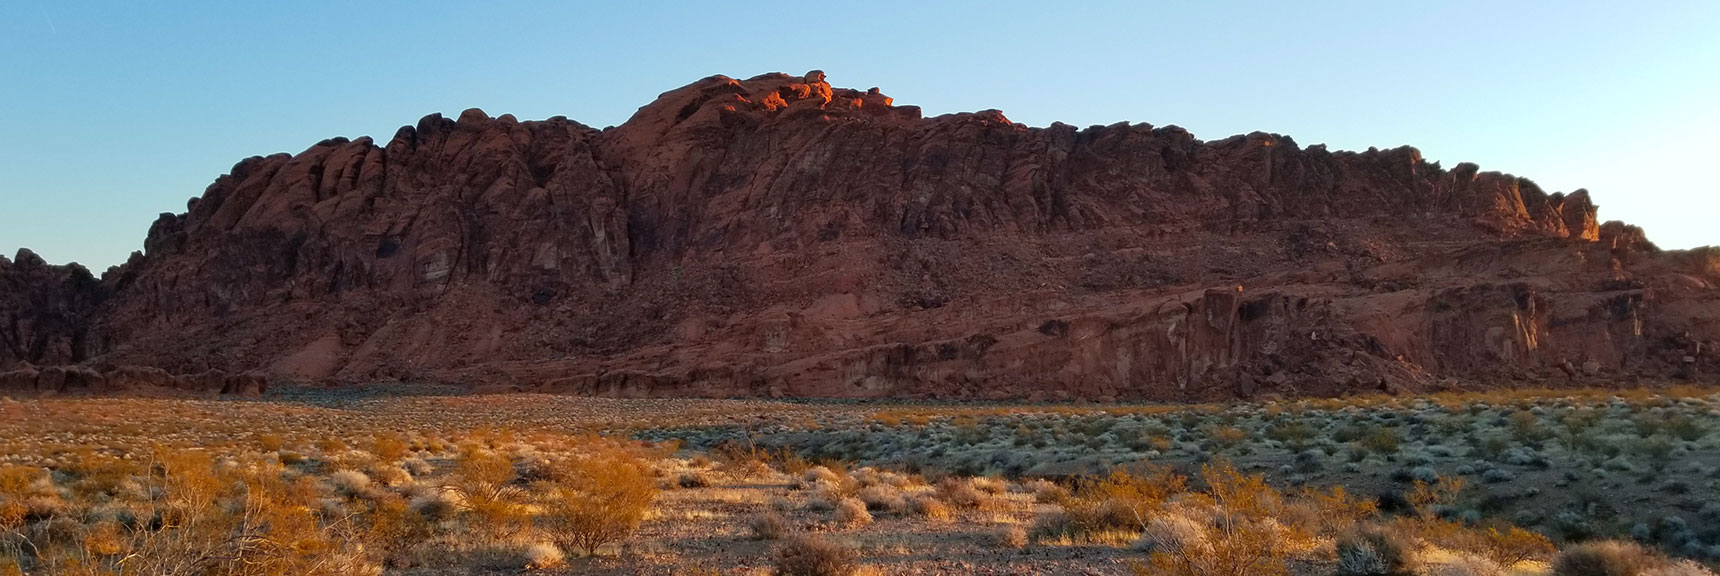 Red Hills to the Northeast of Prospect Trail in Valley of Fire State Park, Nevada